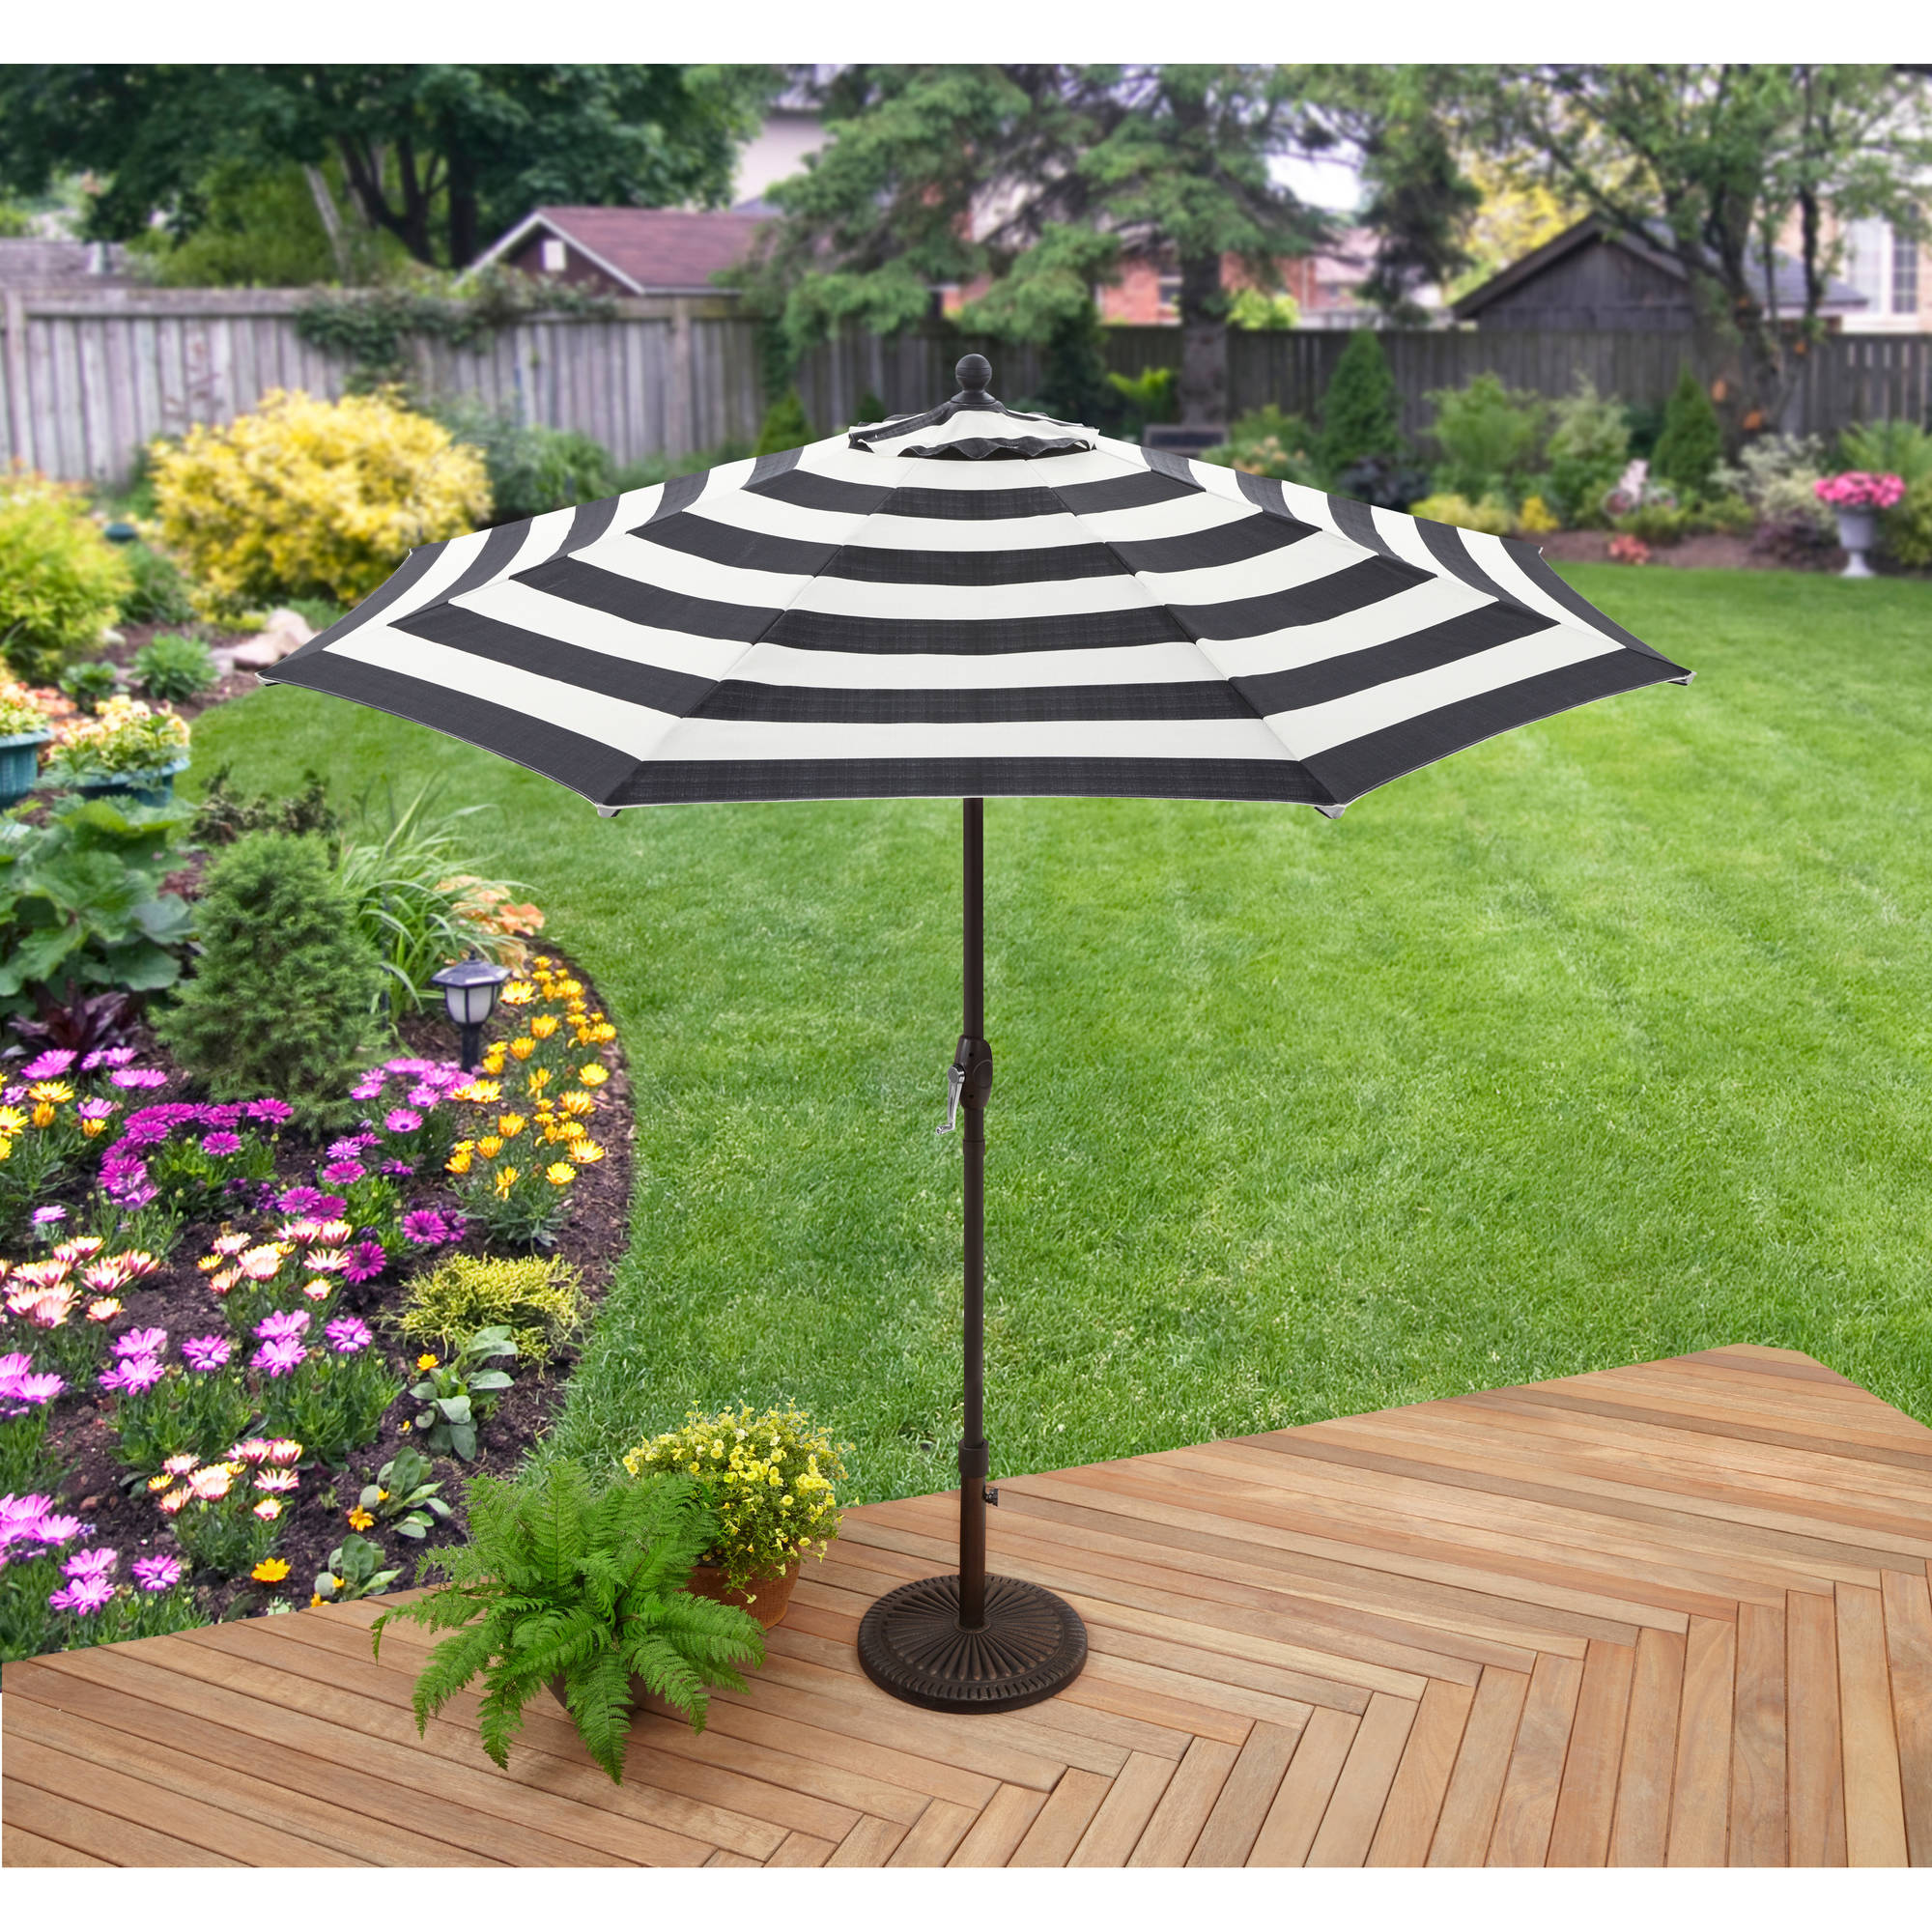 Better Homes And Gardens 9u0027 Market Umbrella, Cabana Stripe